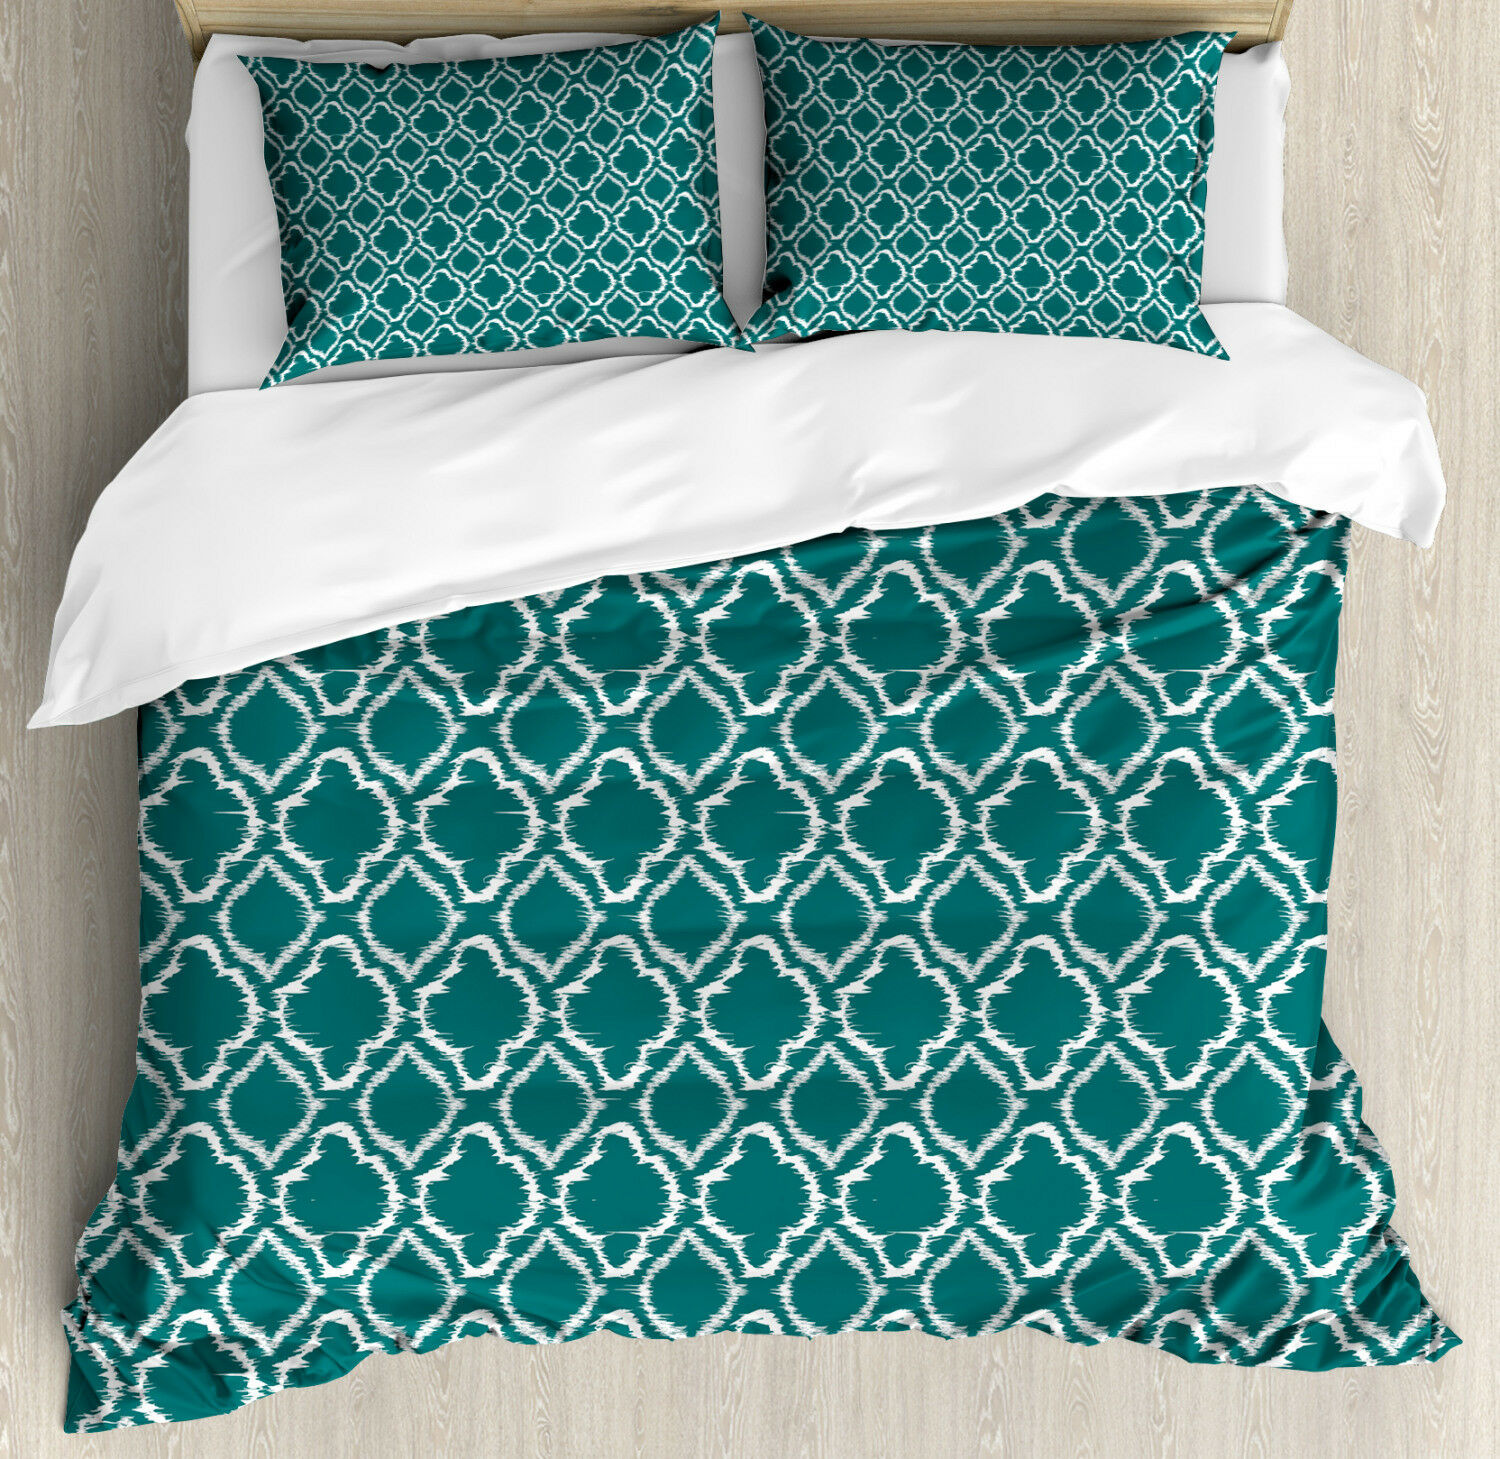 Teal Duvet Cover Set with Pillow Shams Traditional Ikat Pattern Print